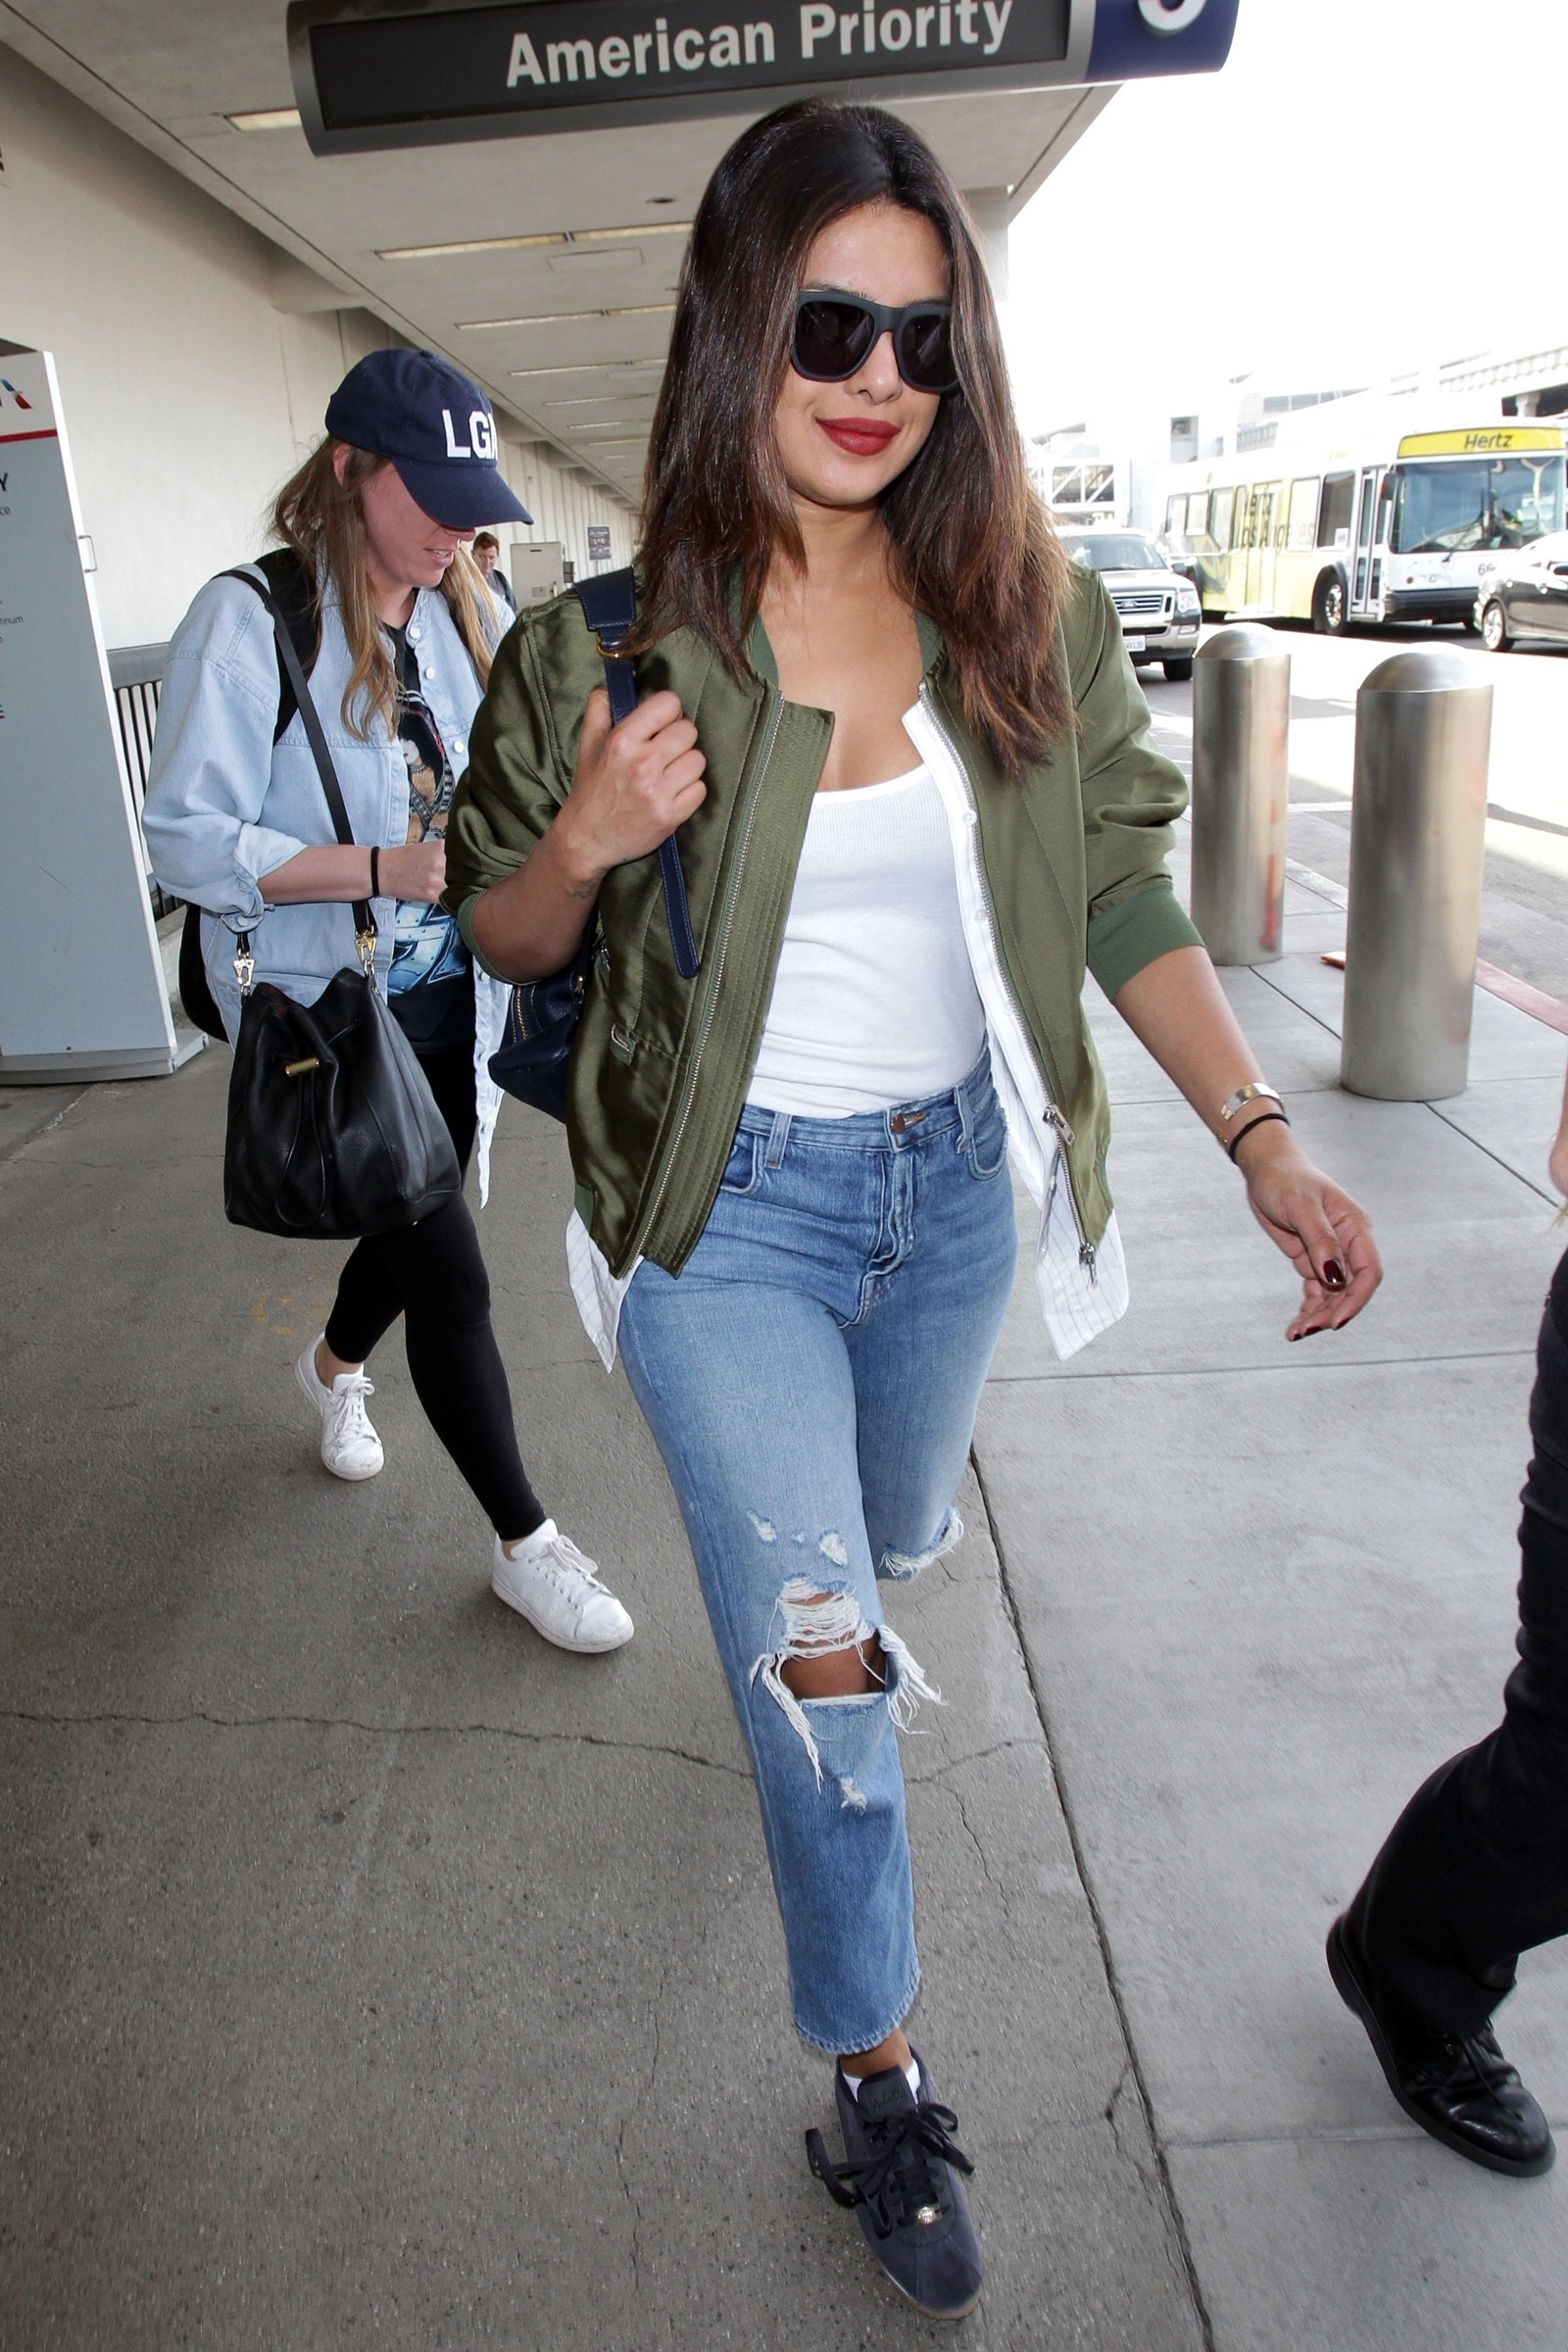 Priyanka Chopra wears a sporty olive green bomber jacket and suede sneakers while traveling through LAX airport.